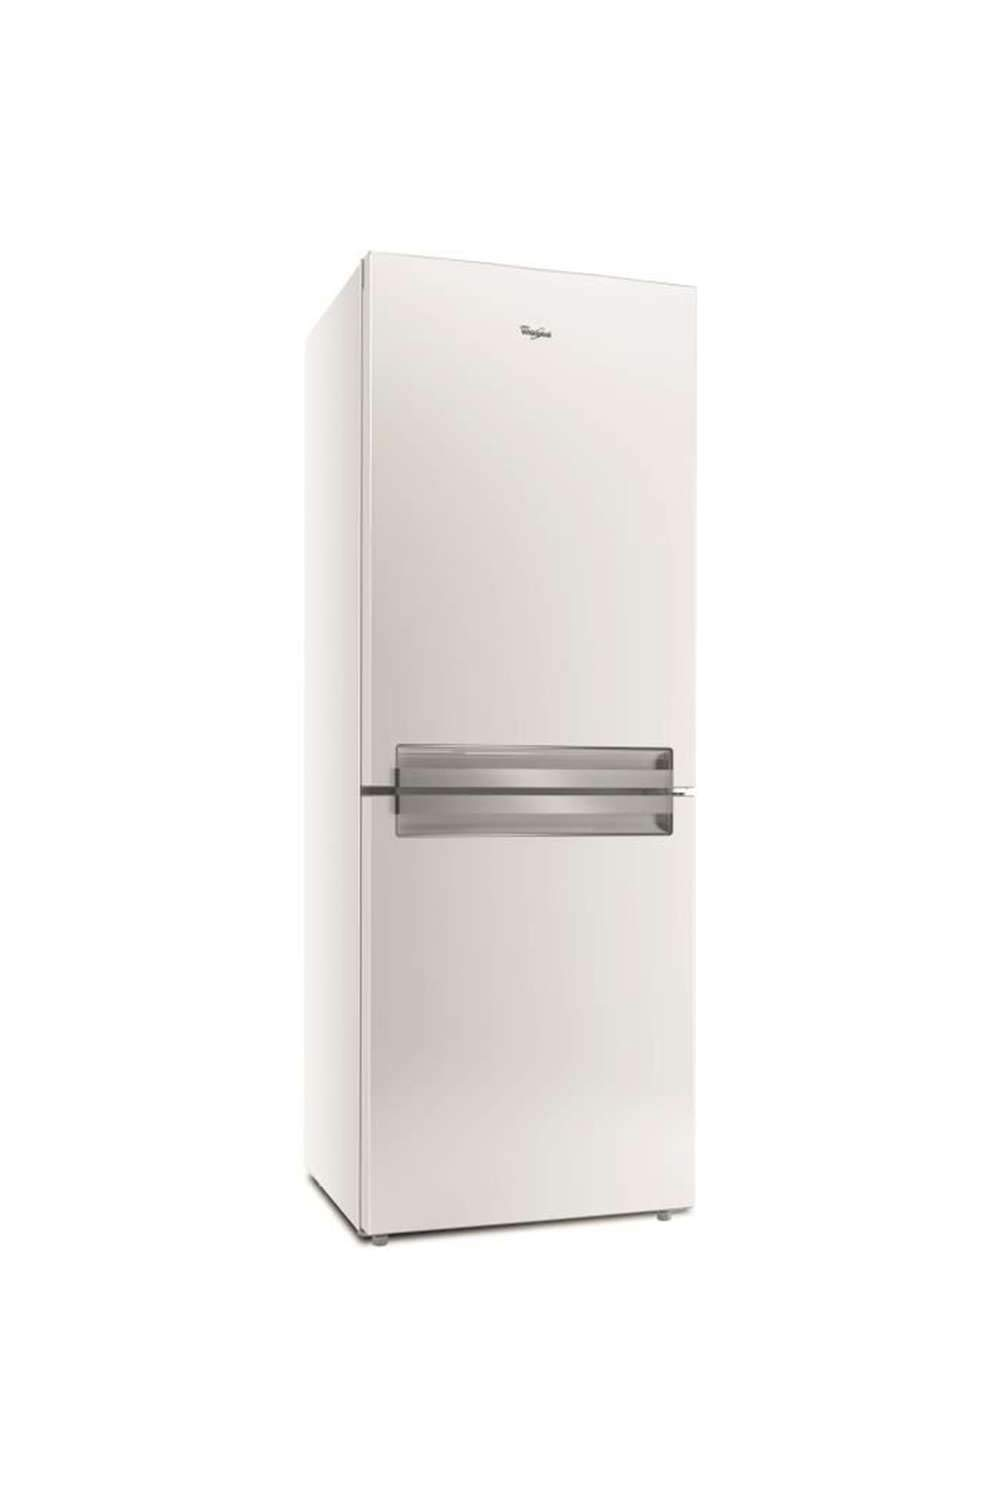 Whirlpool B TNF 5011 W Independiente 450L A+ Blanco nevera y ...